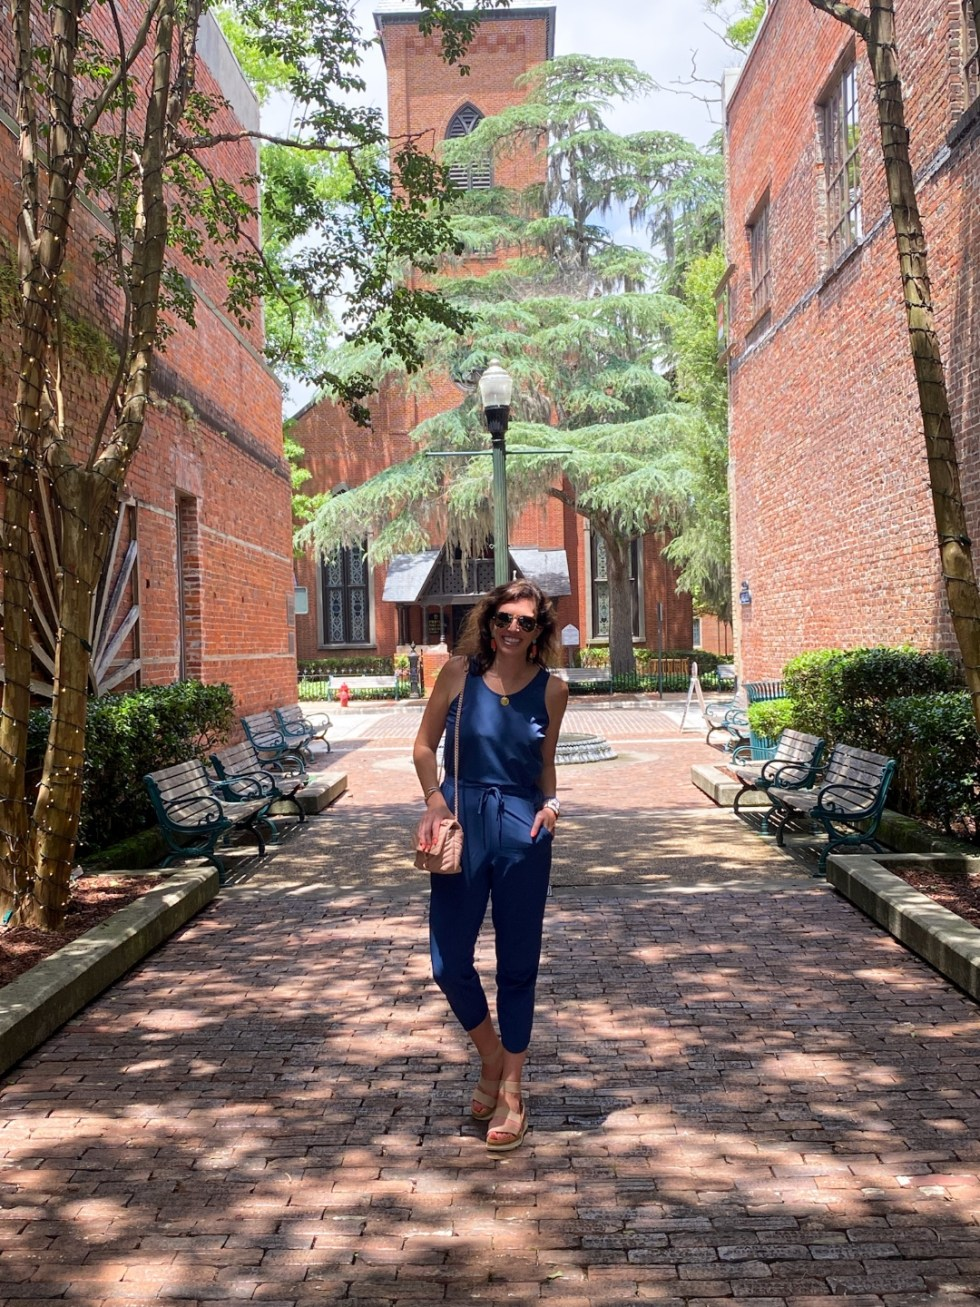 An Update on My North Carolina 100 County Tour - I'm Fixin' To - @imfixintoblog | Things to do in North Carolina by popular NC travel blog, I'm Fixin' To: image of a woman wearing a blue jumpsuit and standing on a brick paved road.